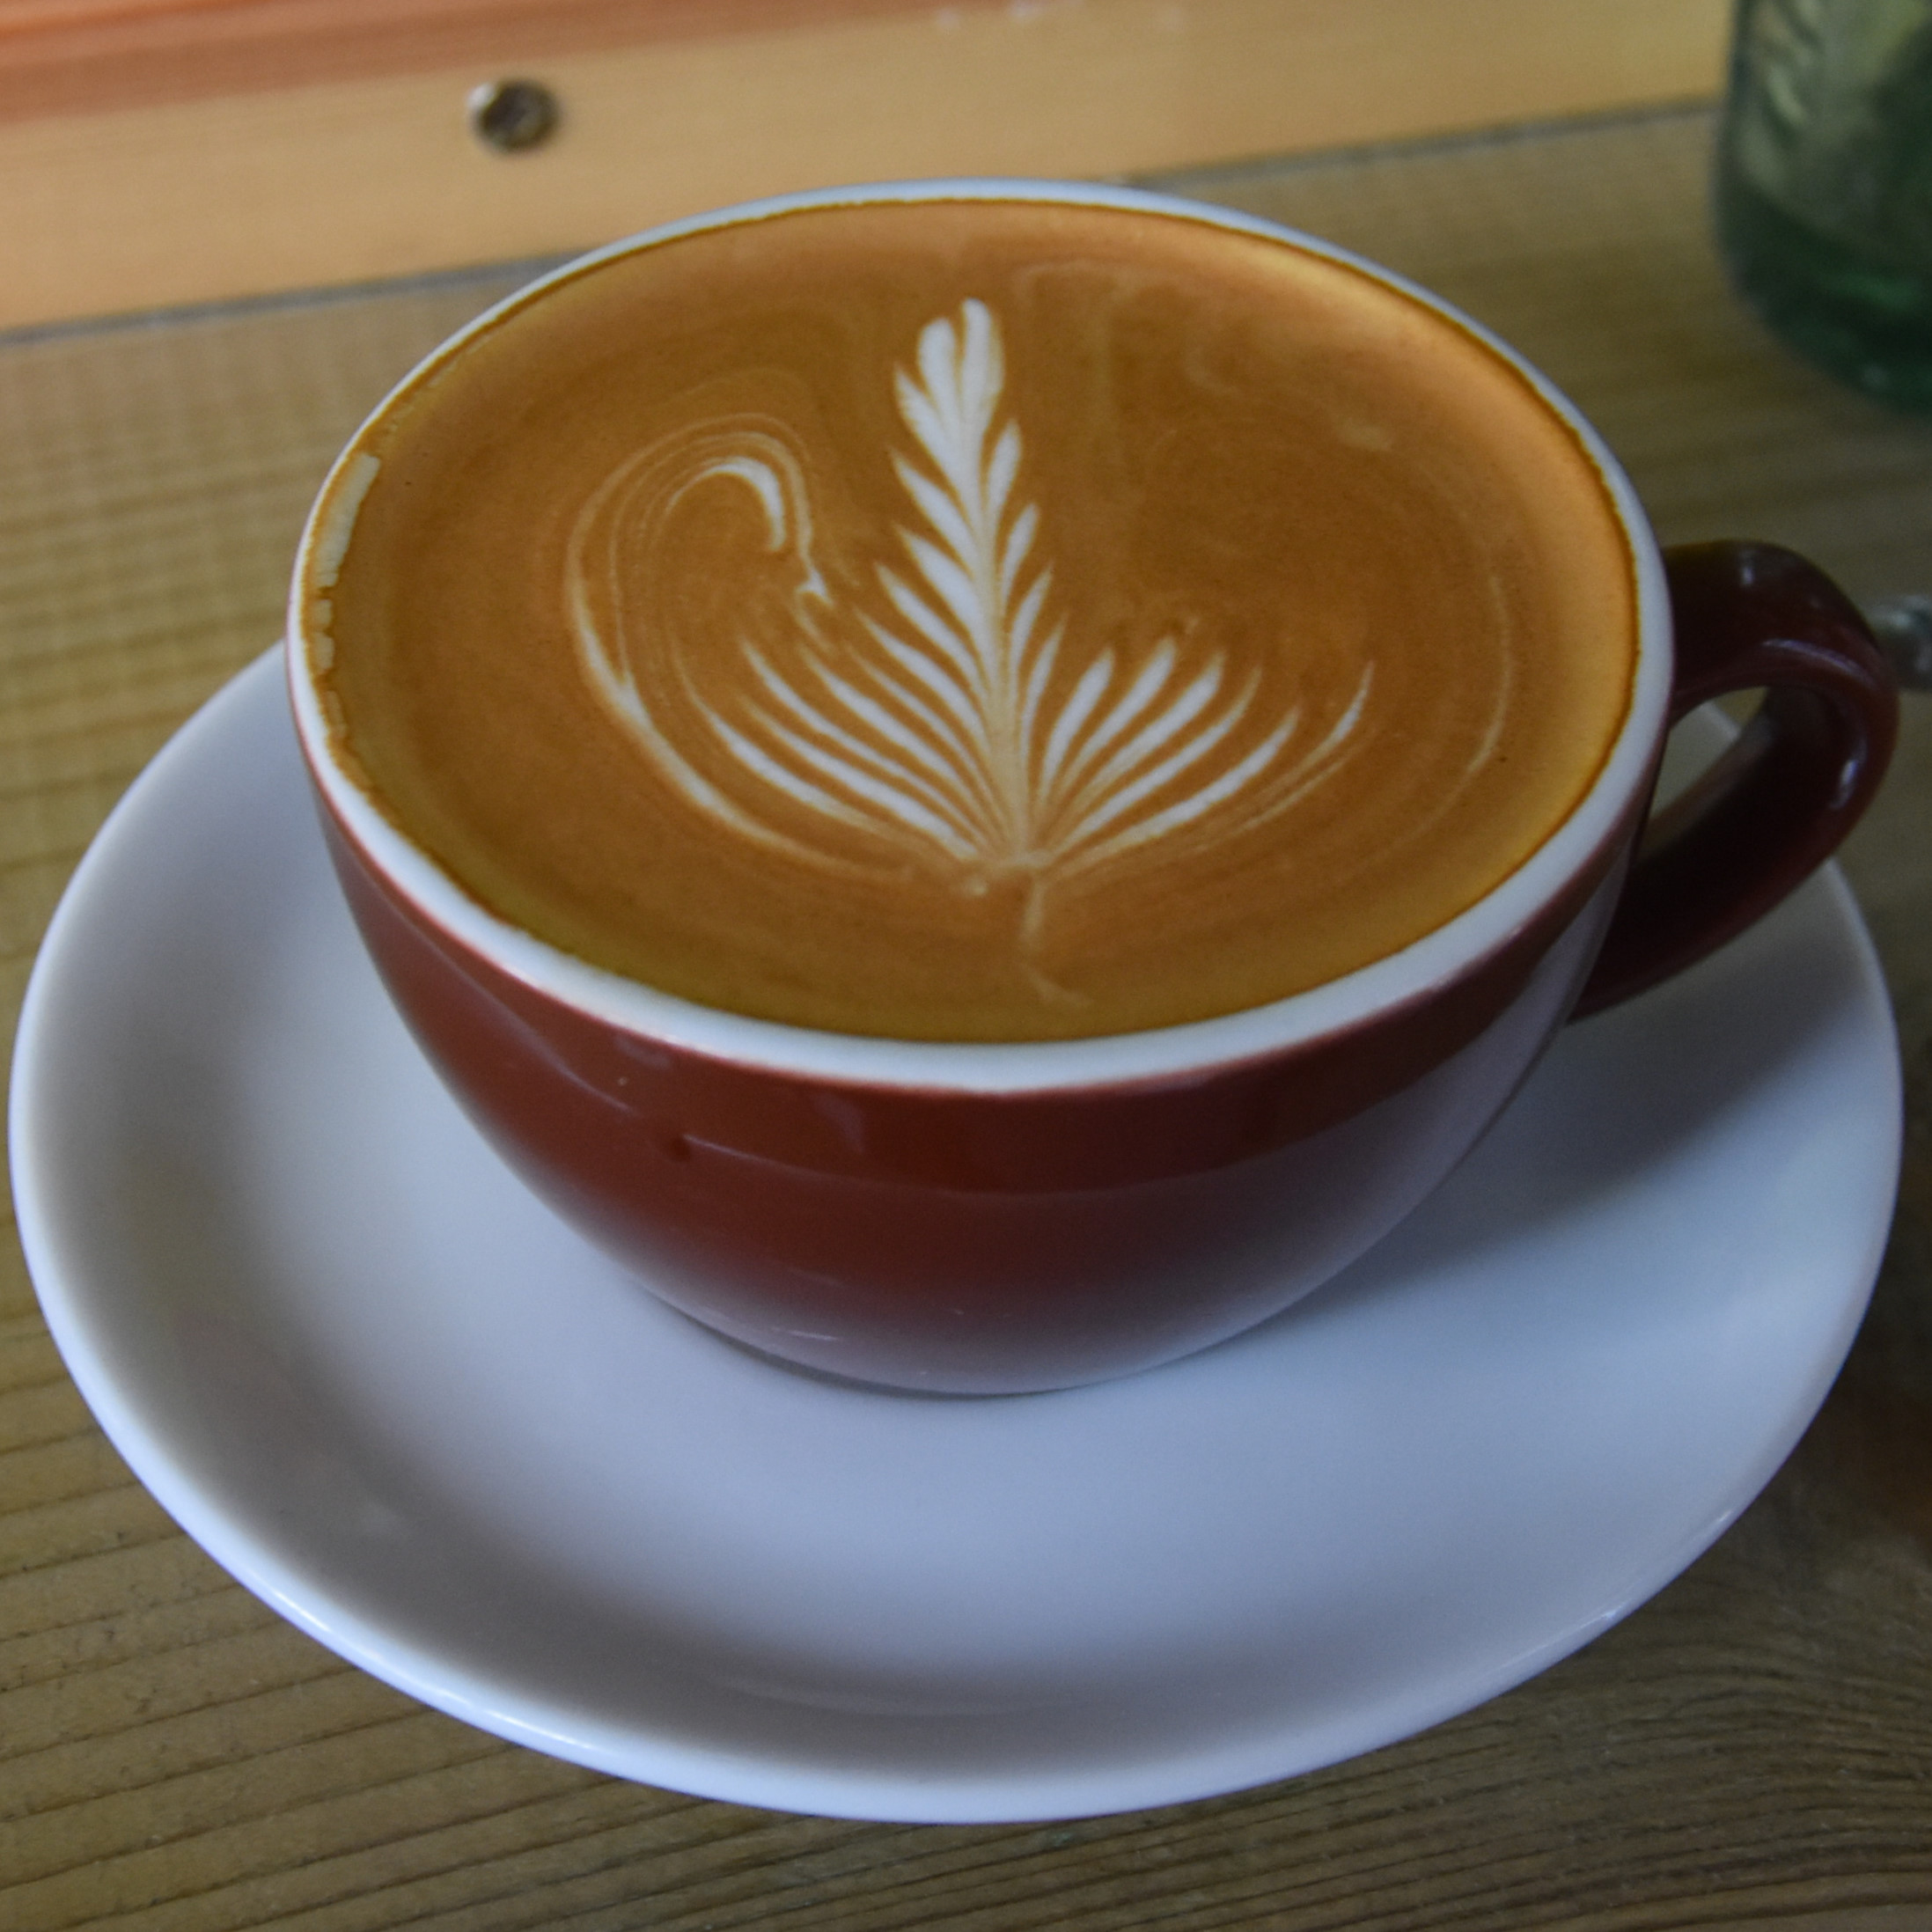 Some lovely latte art in my flat white at Espressino, the latest addition to the Doctor Espresso stable.